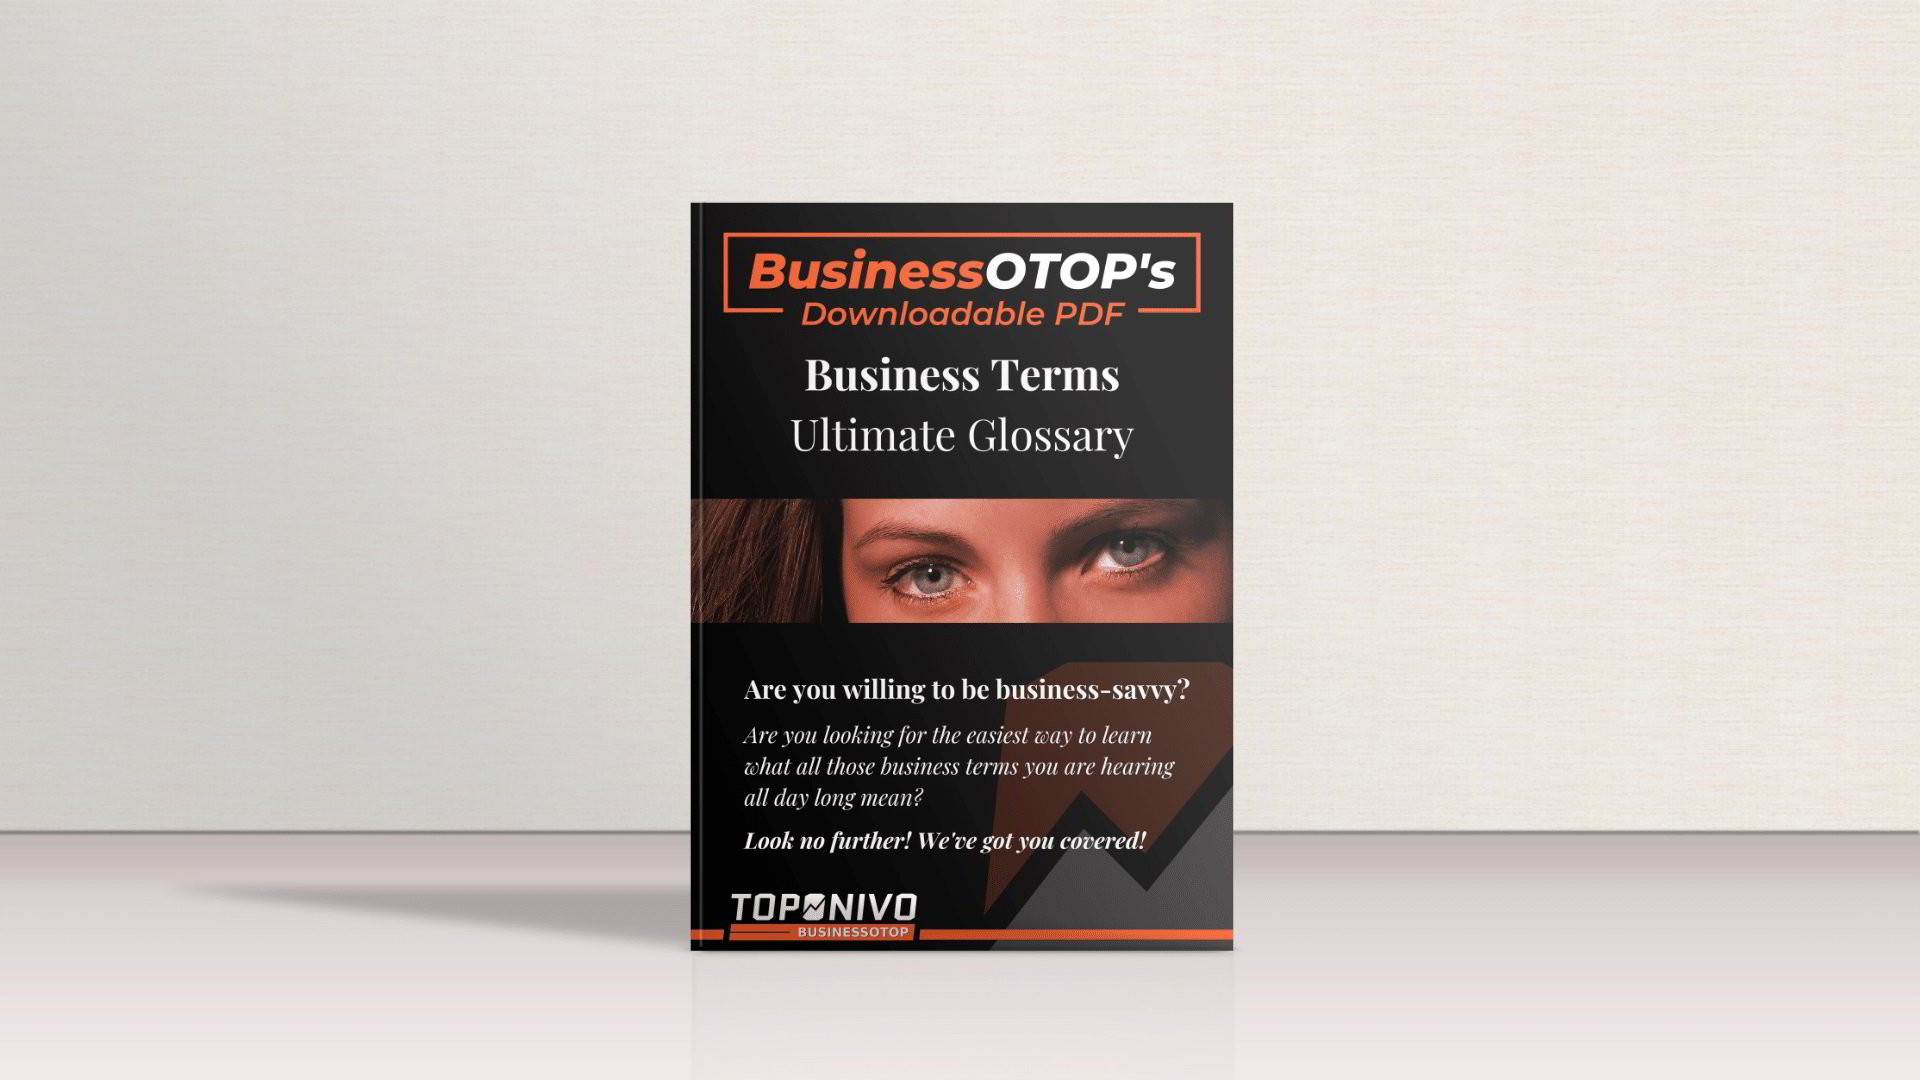 Business Terms Ultimate Glossary (Downloadable PDF)